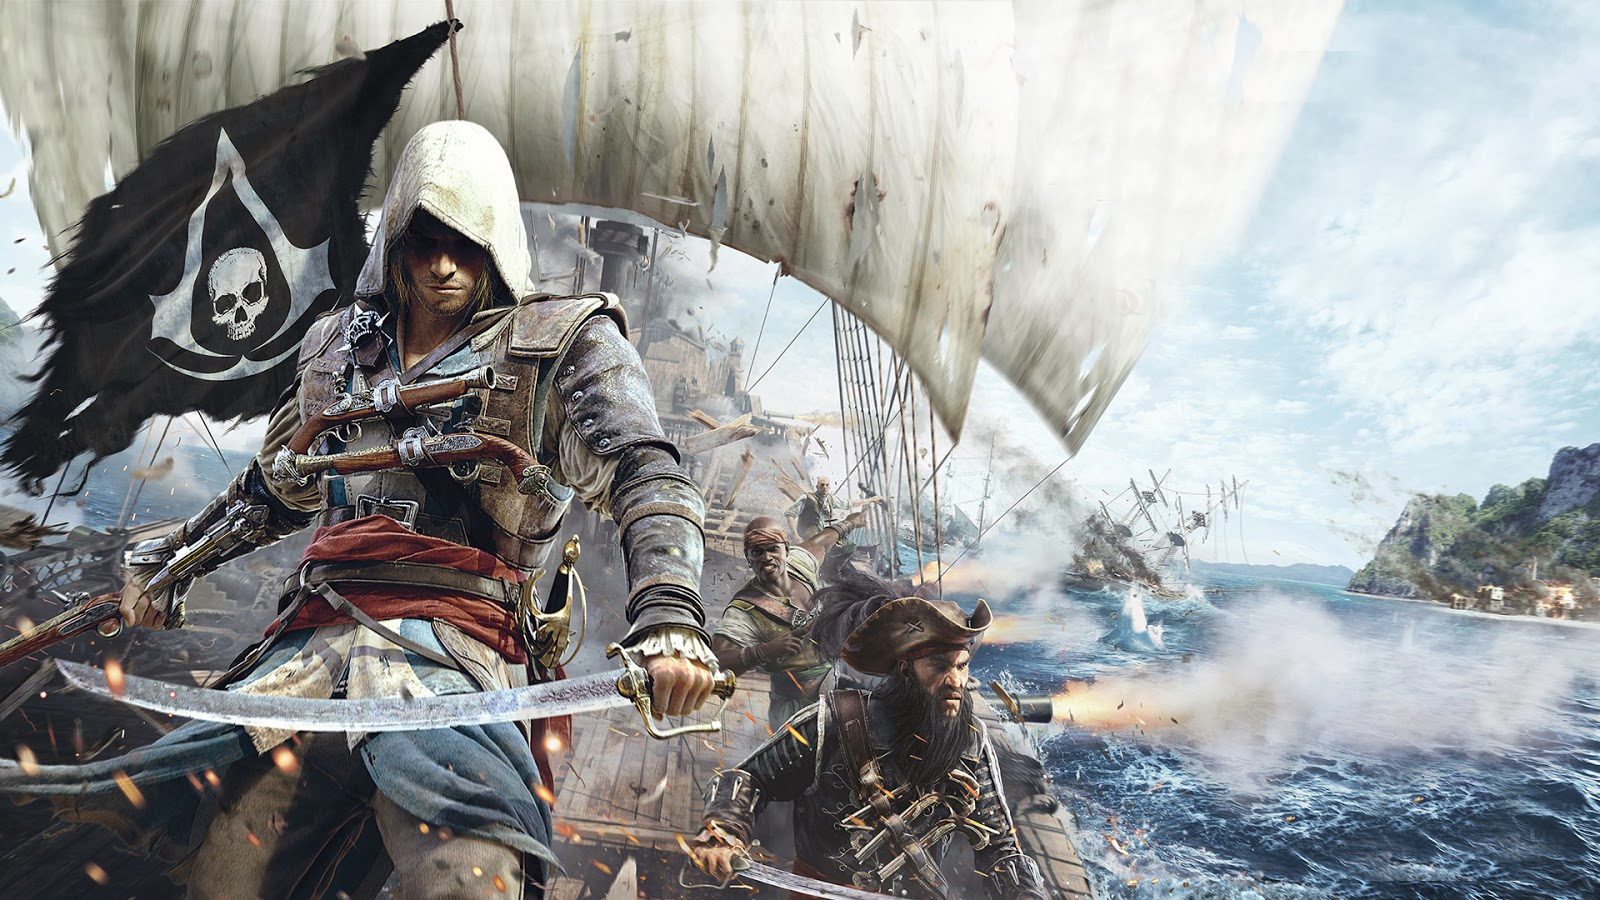 Big Gaming News For Big Gamers Assassin S Creed 4 Drops To 30